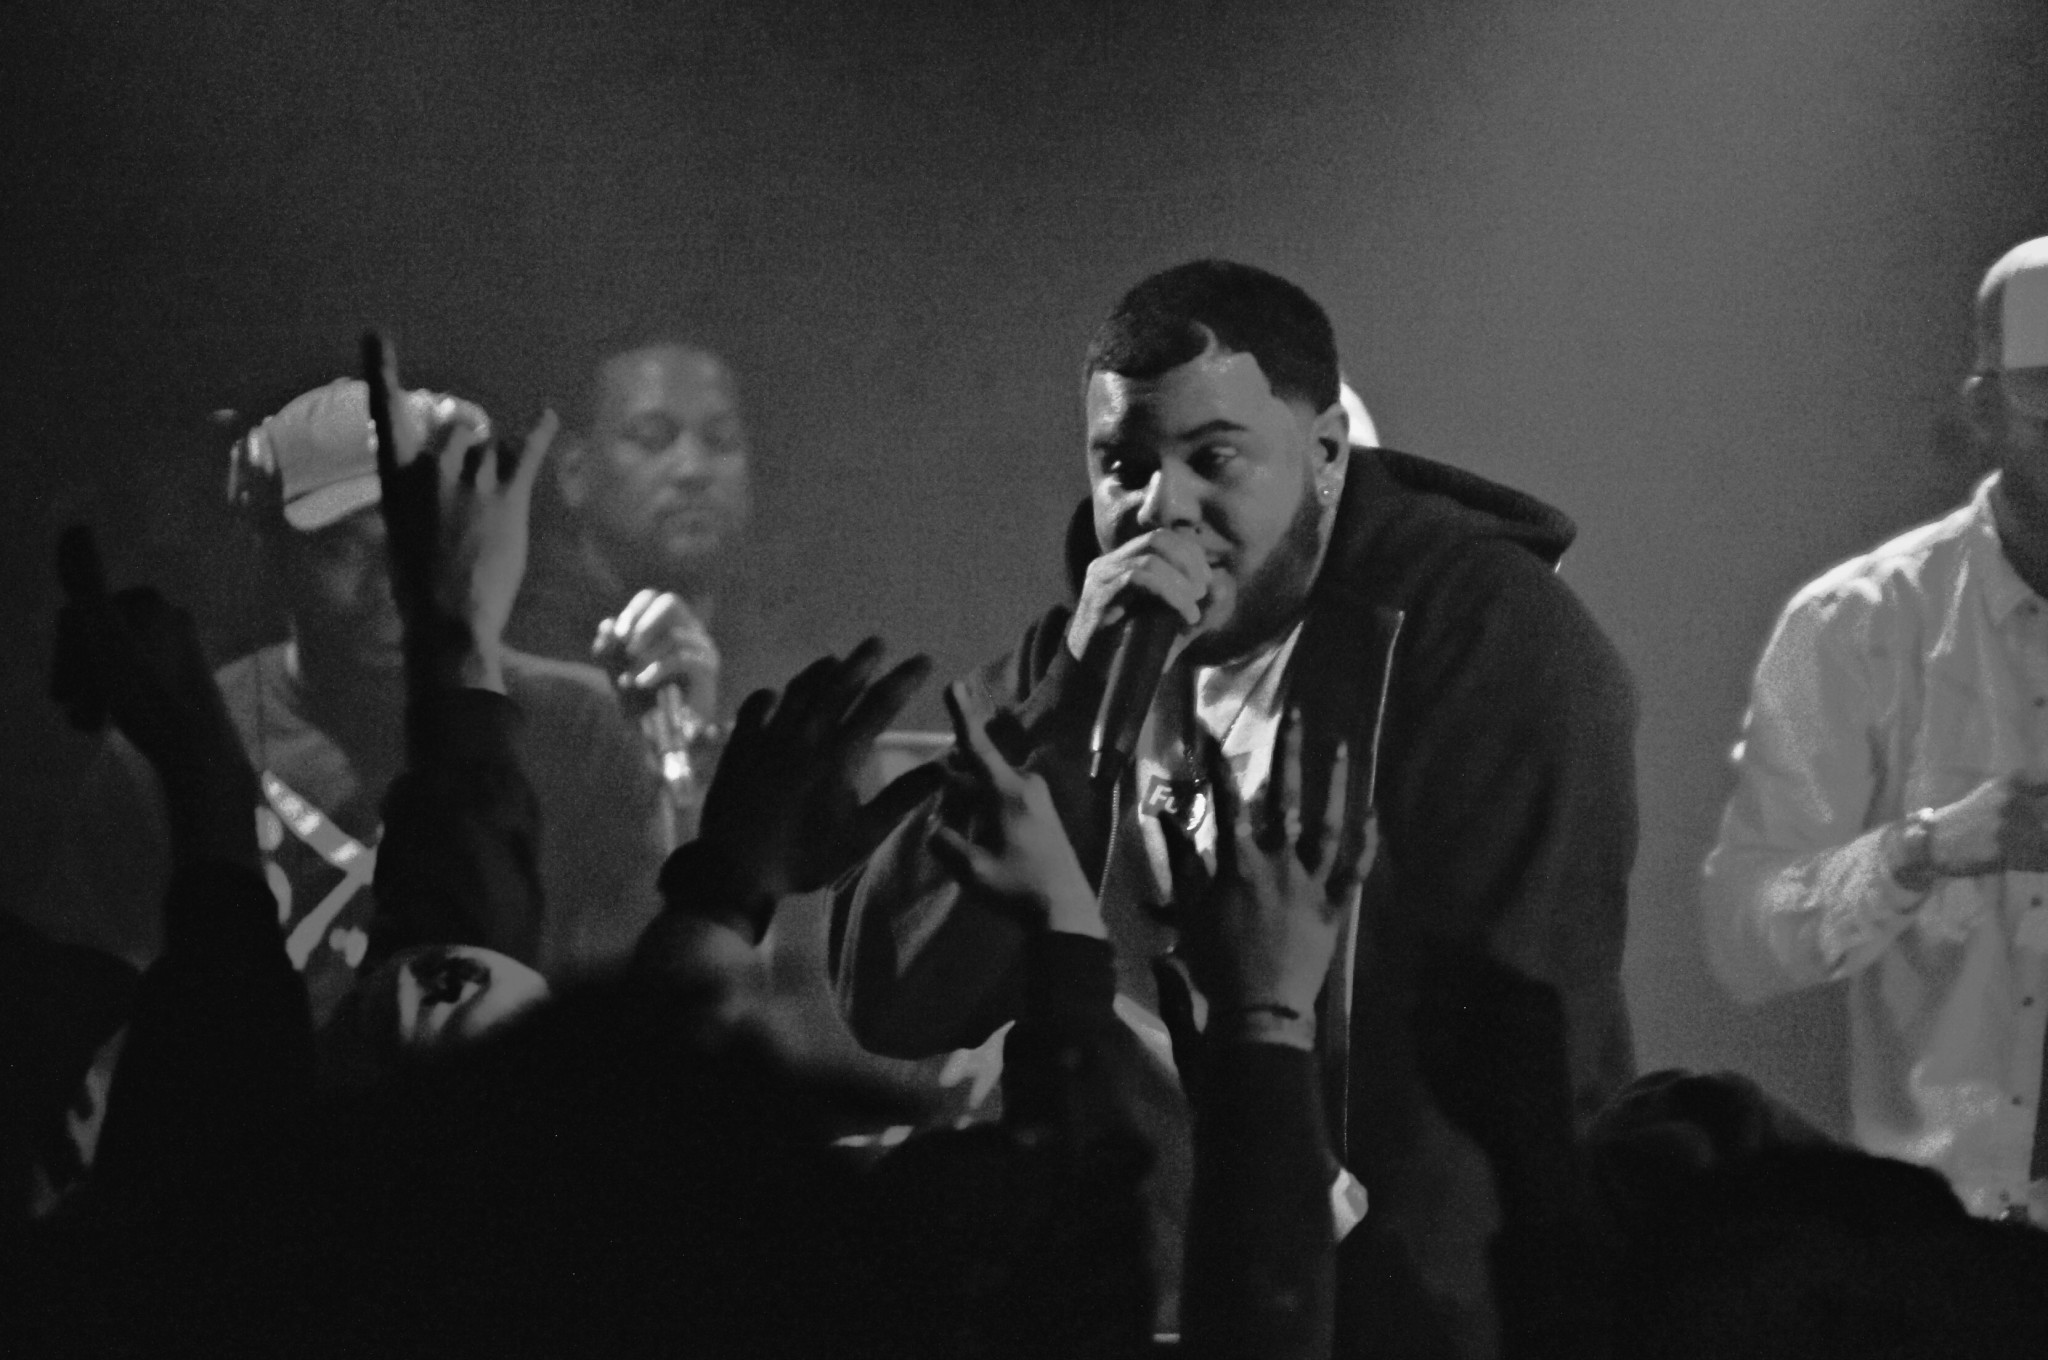 Concert Review: Le$ at Warehouse Live